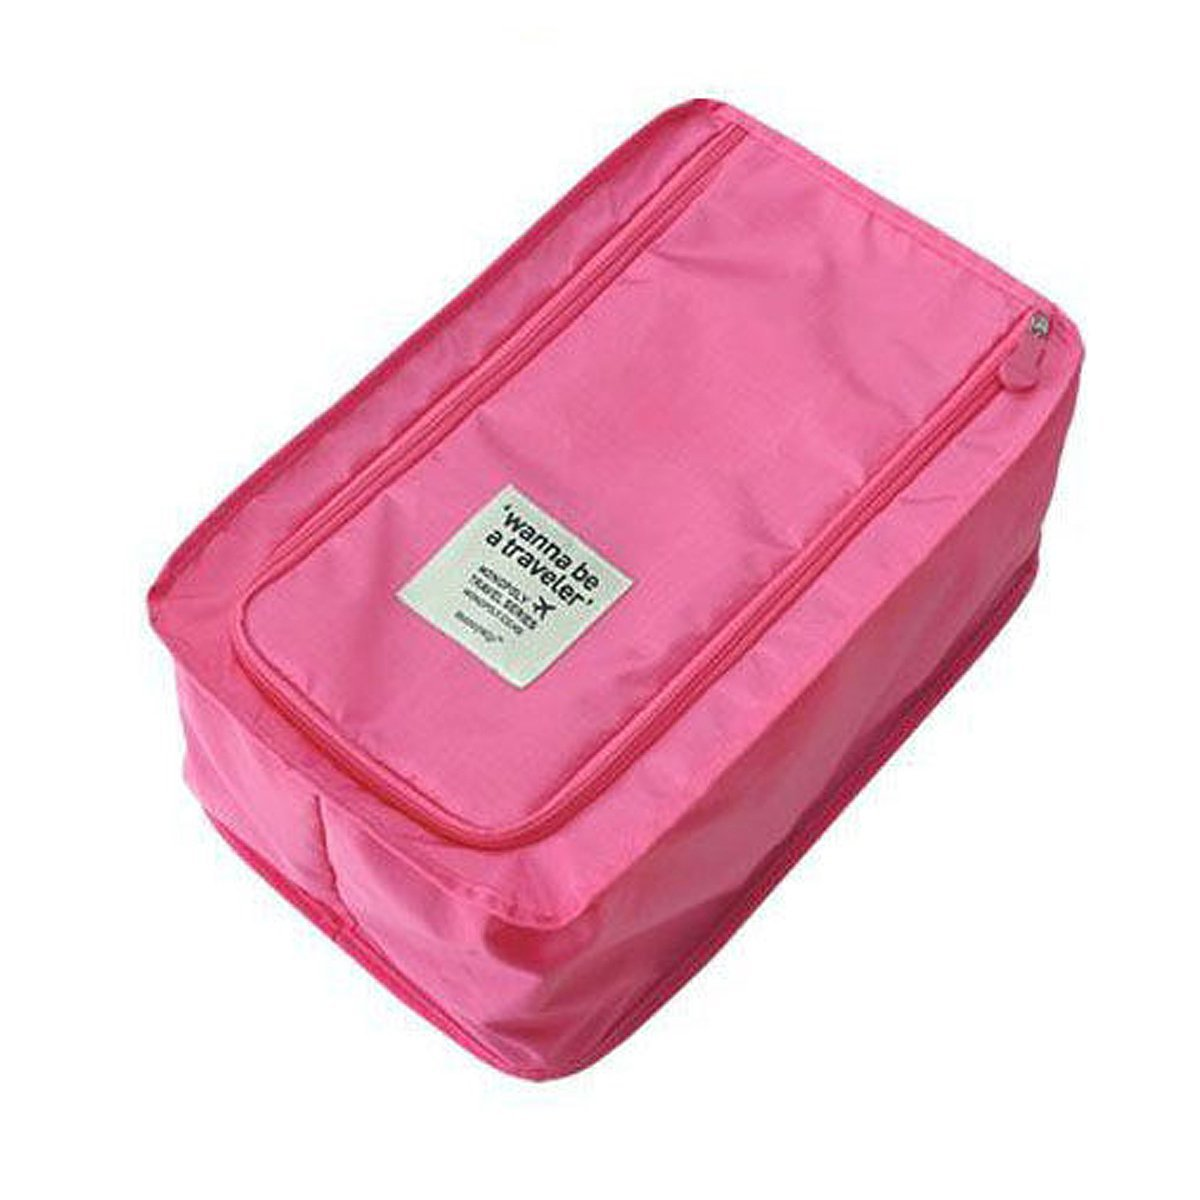 Travel Organizer Packing Cube for Shoe Bag, Lingerie